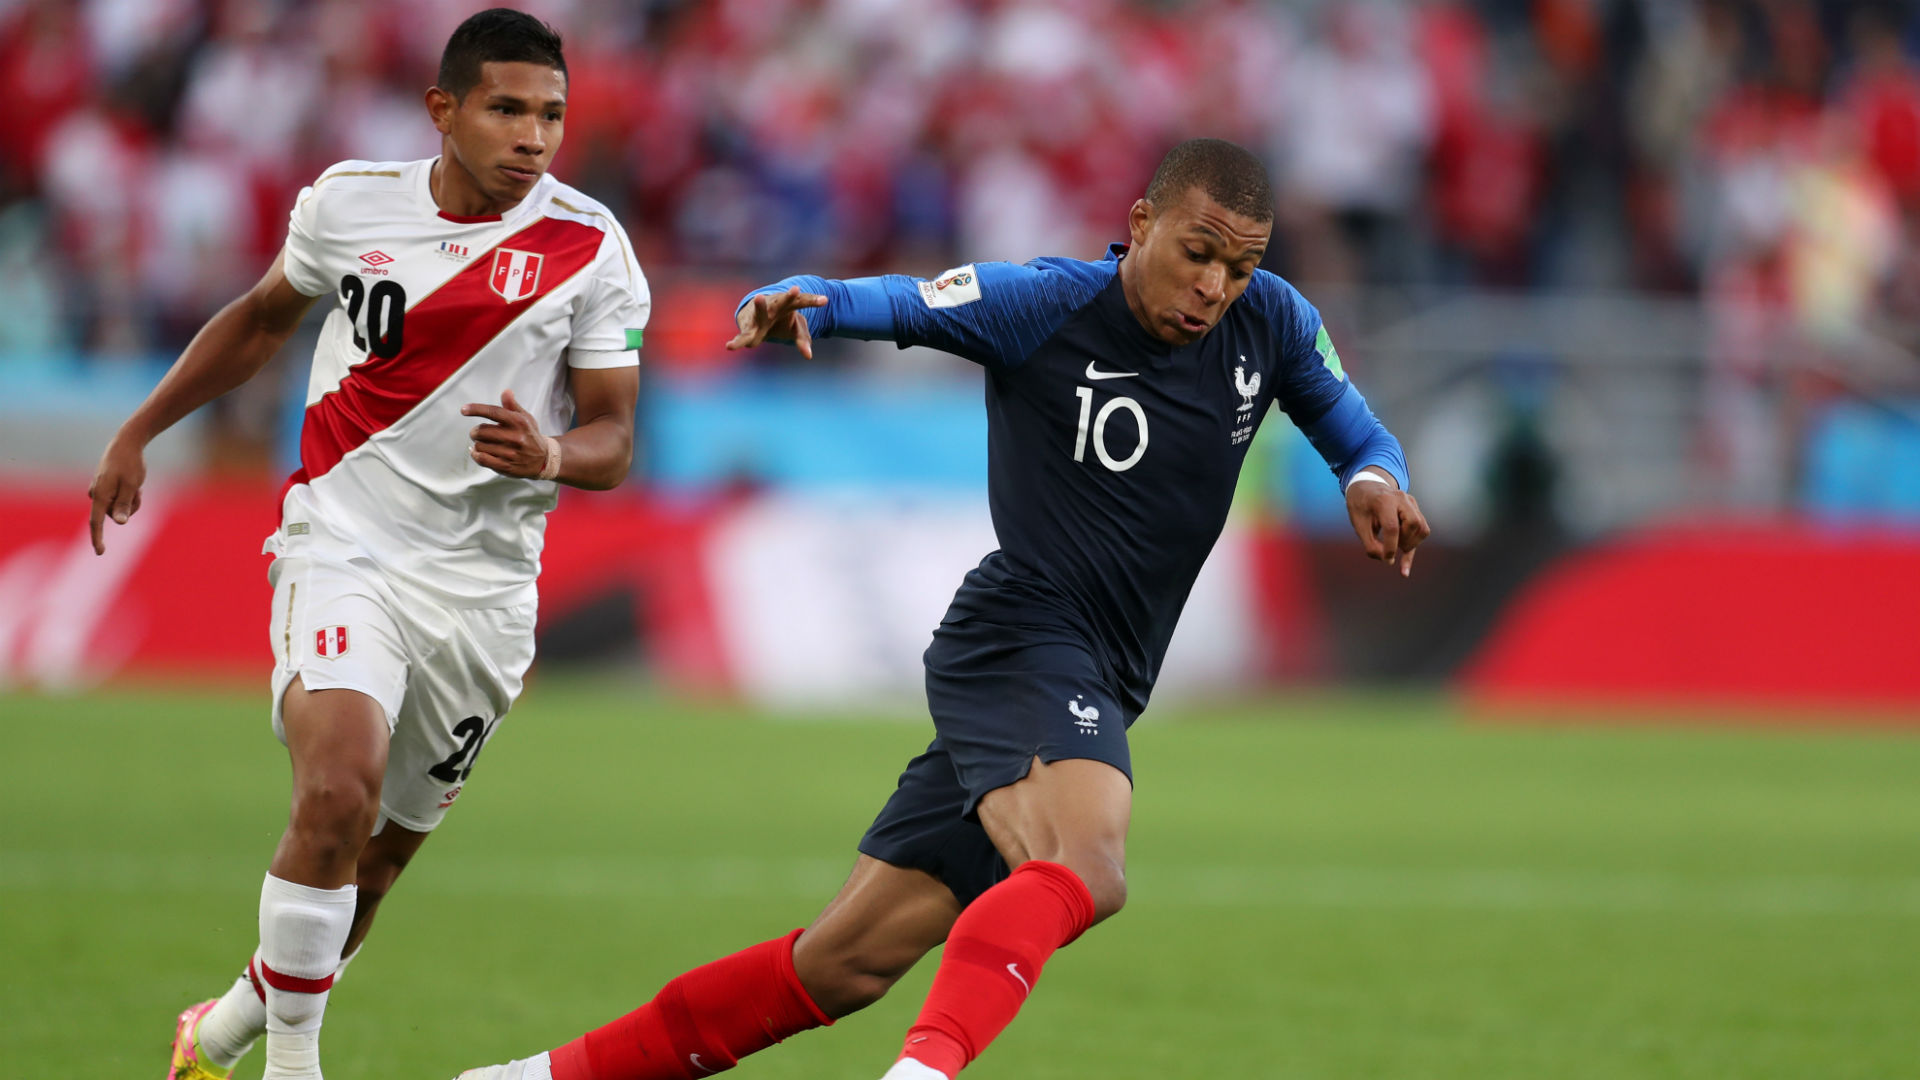 Kylian Mbappe Edison Flores France Peru World Cup 2018 21062018